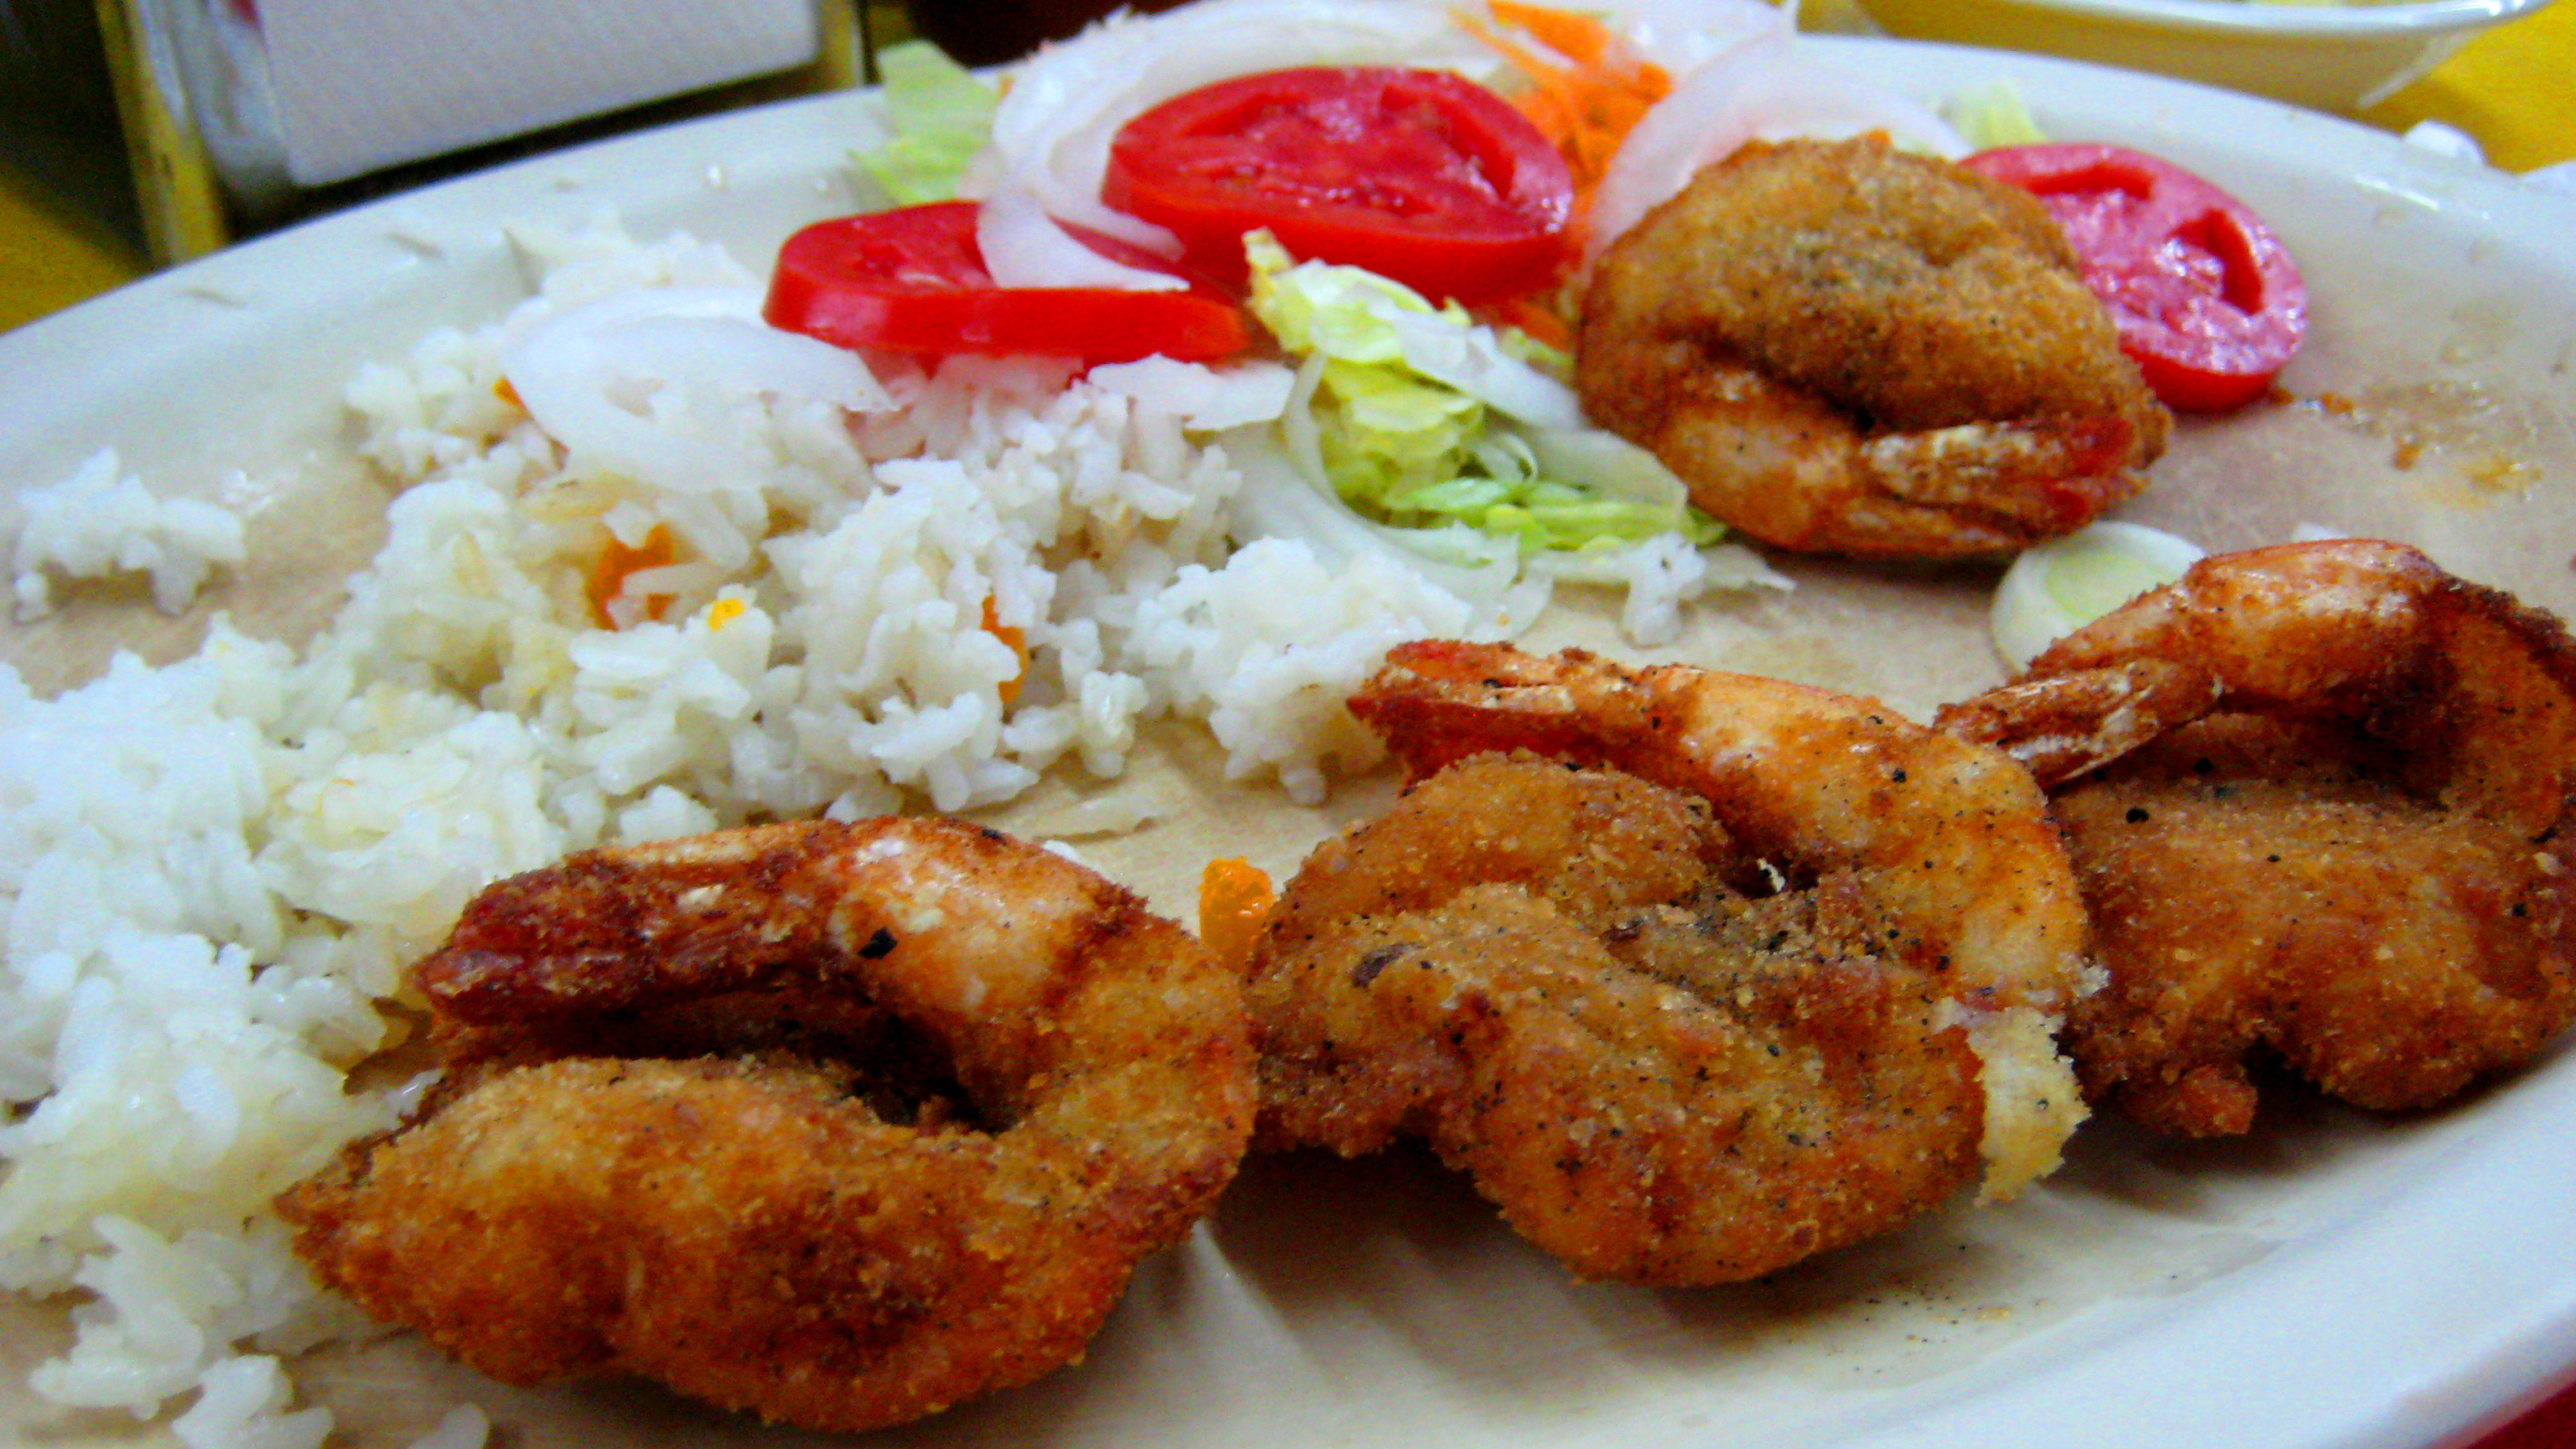 Rice and Shrimp © Monica Wong/flickr